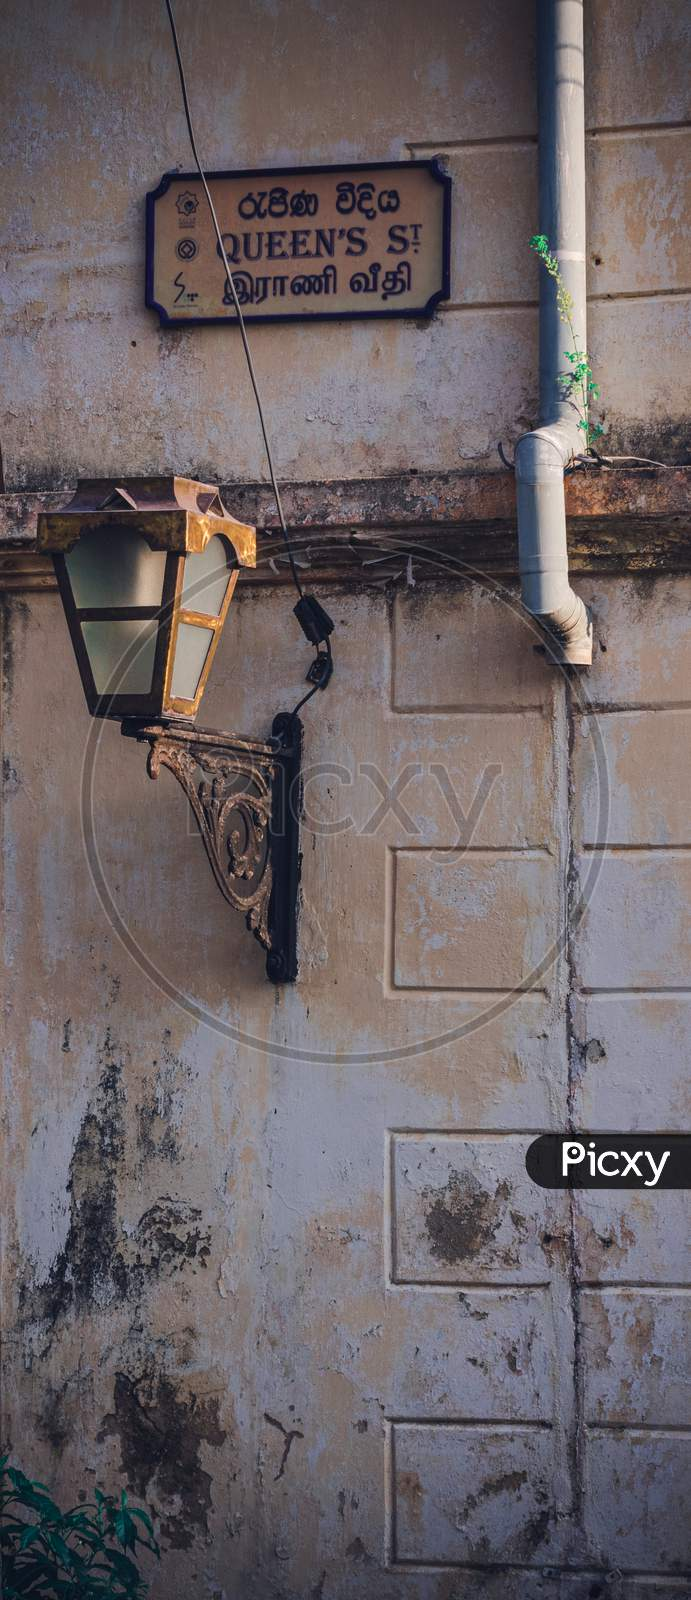 Steel Street Lamp And Queen'S Street Sign In A Rusty Wall Galle Fort. Evening Light Brighten Up The Side Of The Lamp .